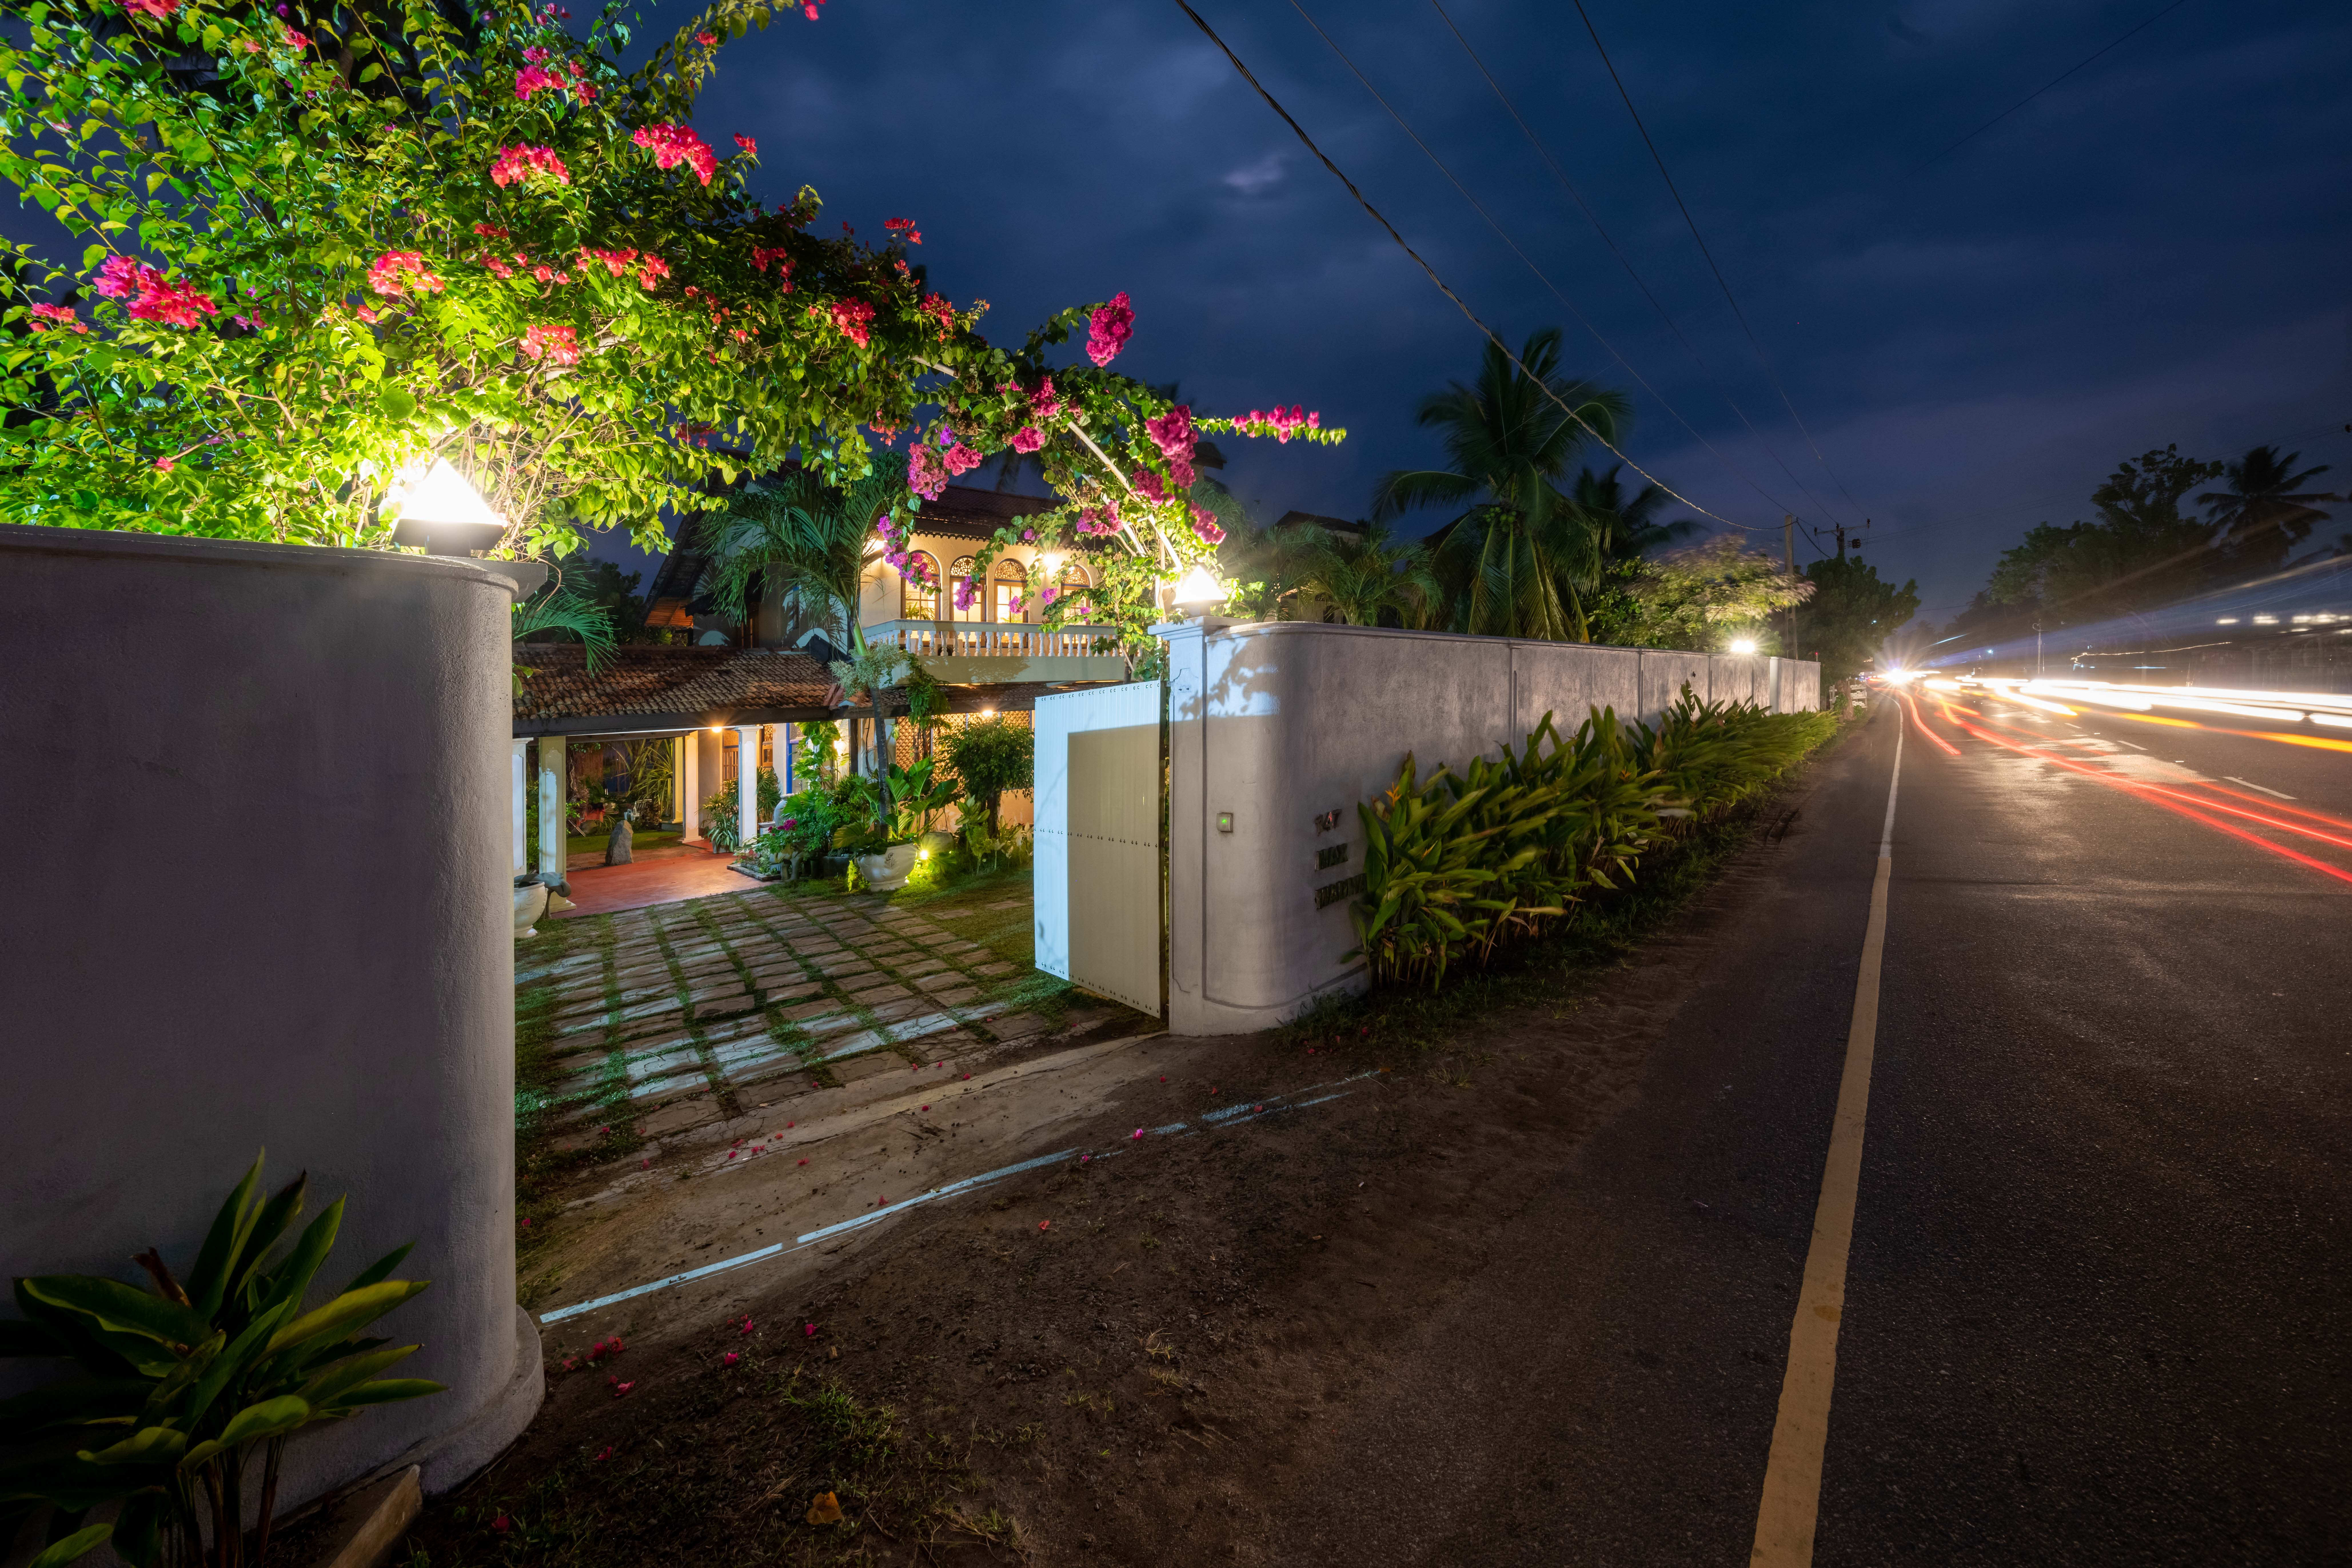 Beautiful Sri Lanka night garden view at the resort